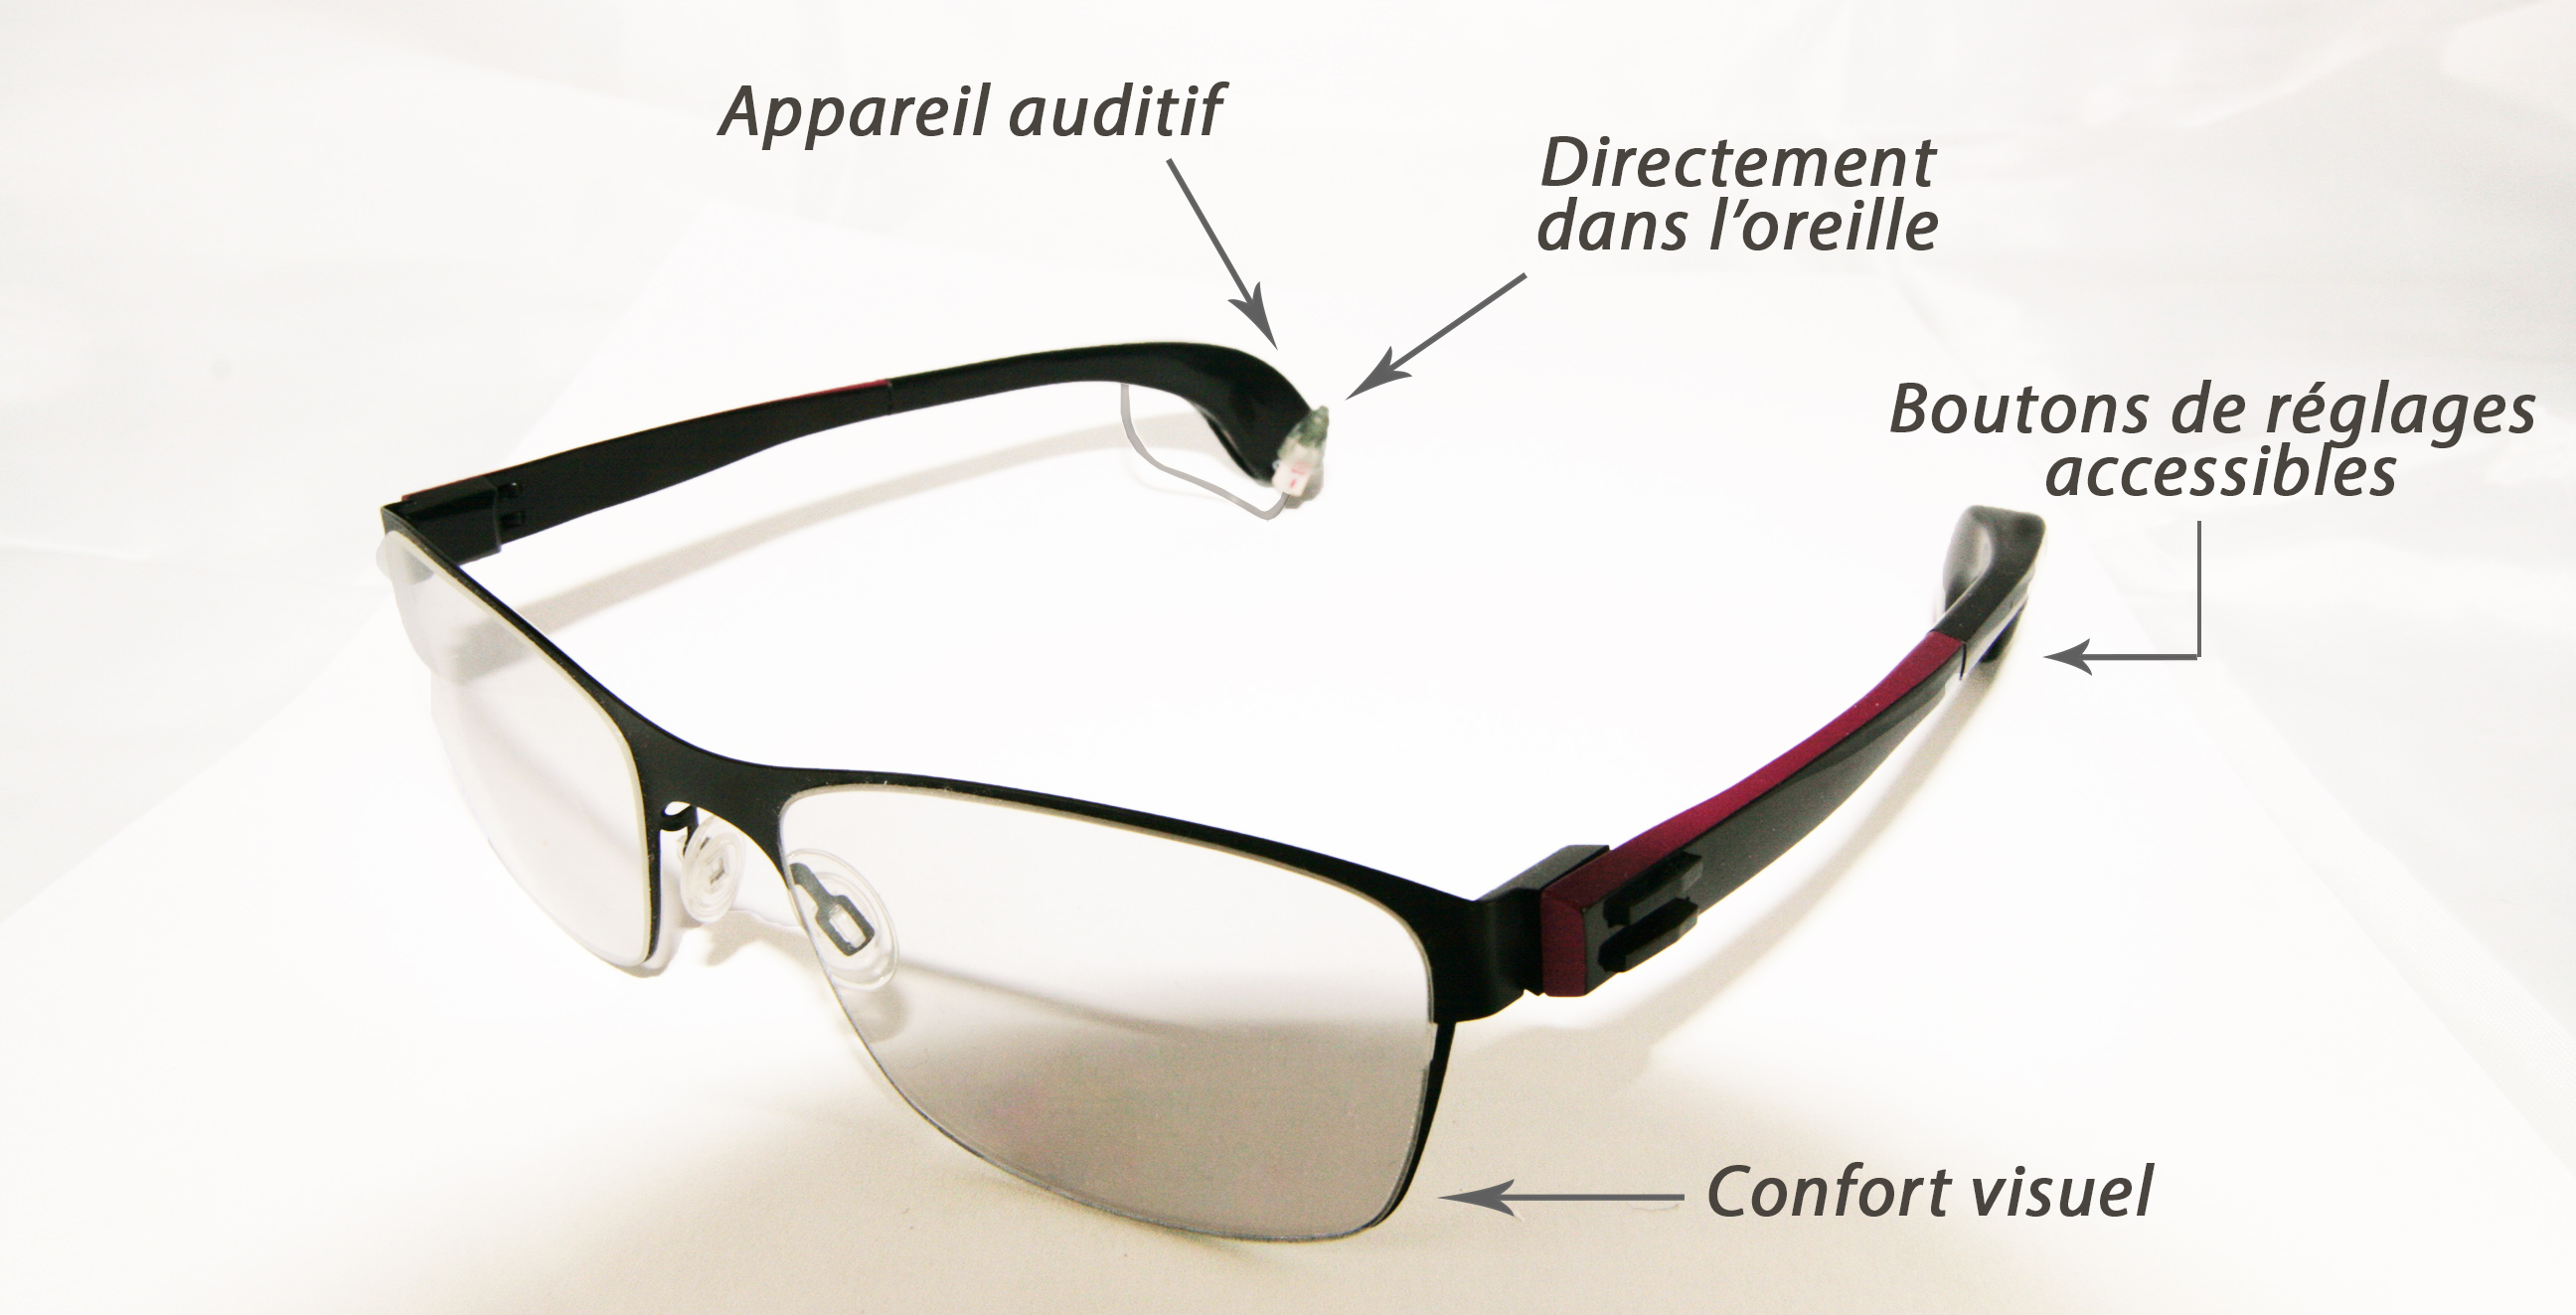 lunette auditive